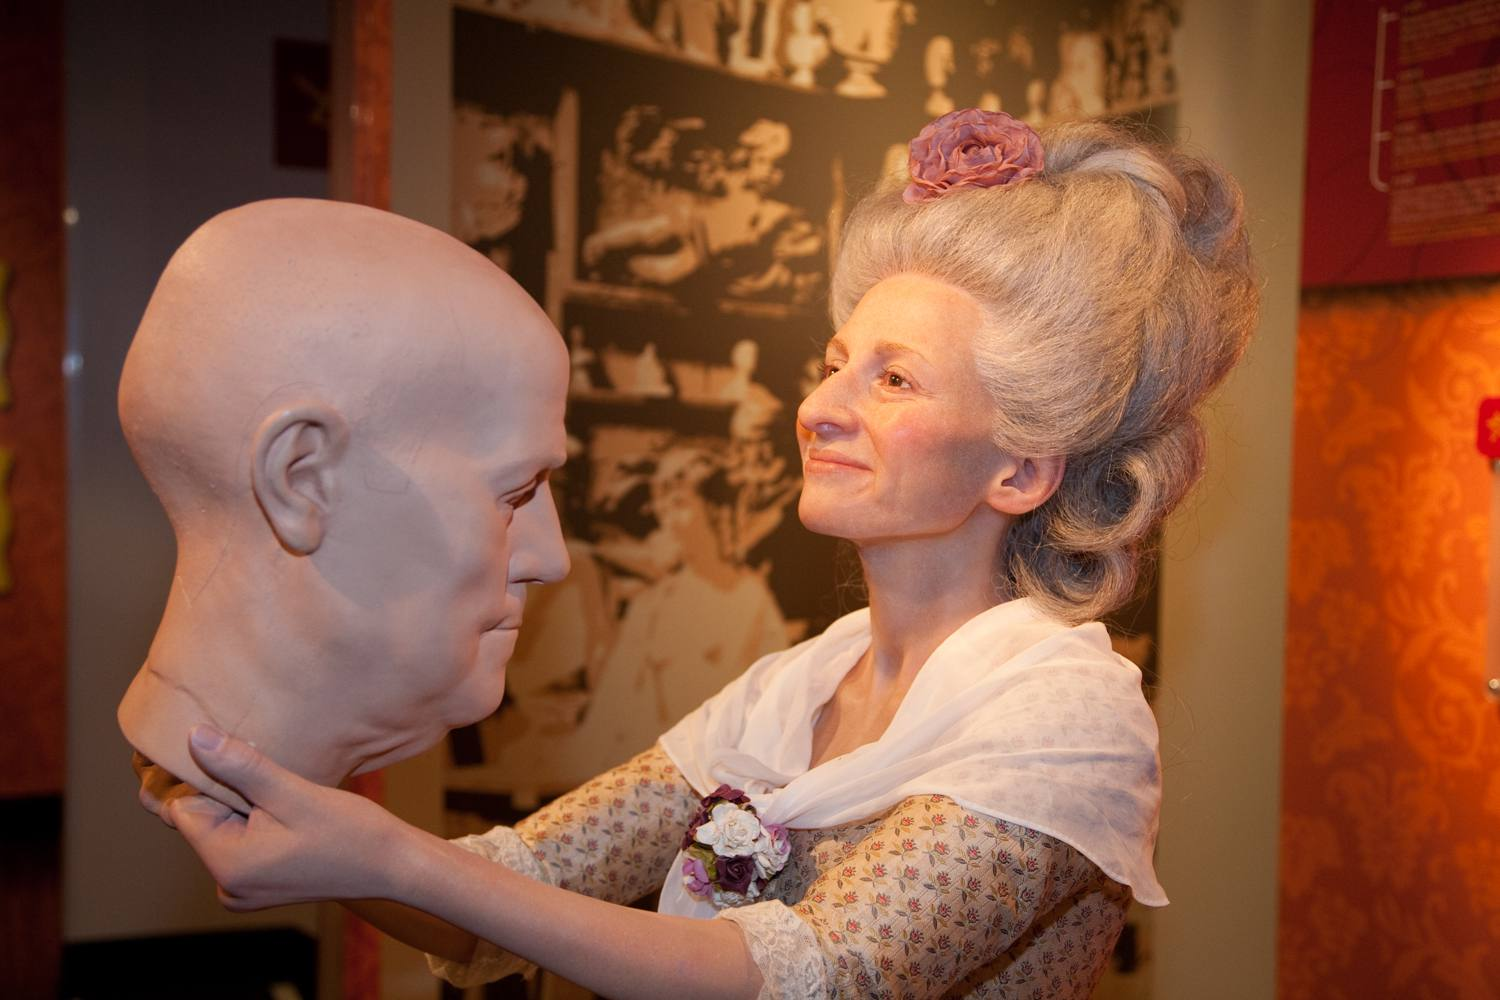 A figure of Madame Tussaud holding a wax head at Madame Tussauds Hollywood